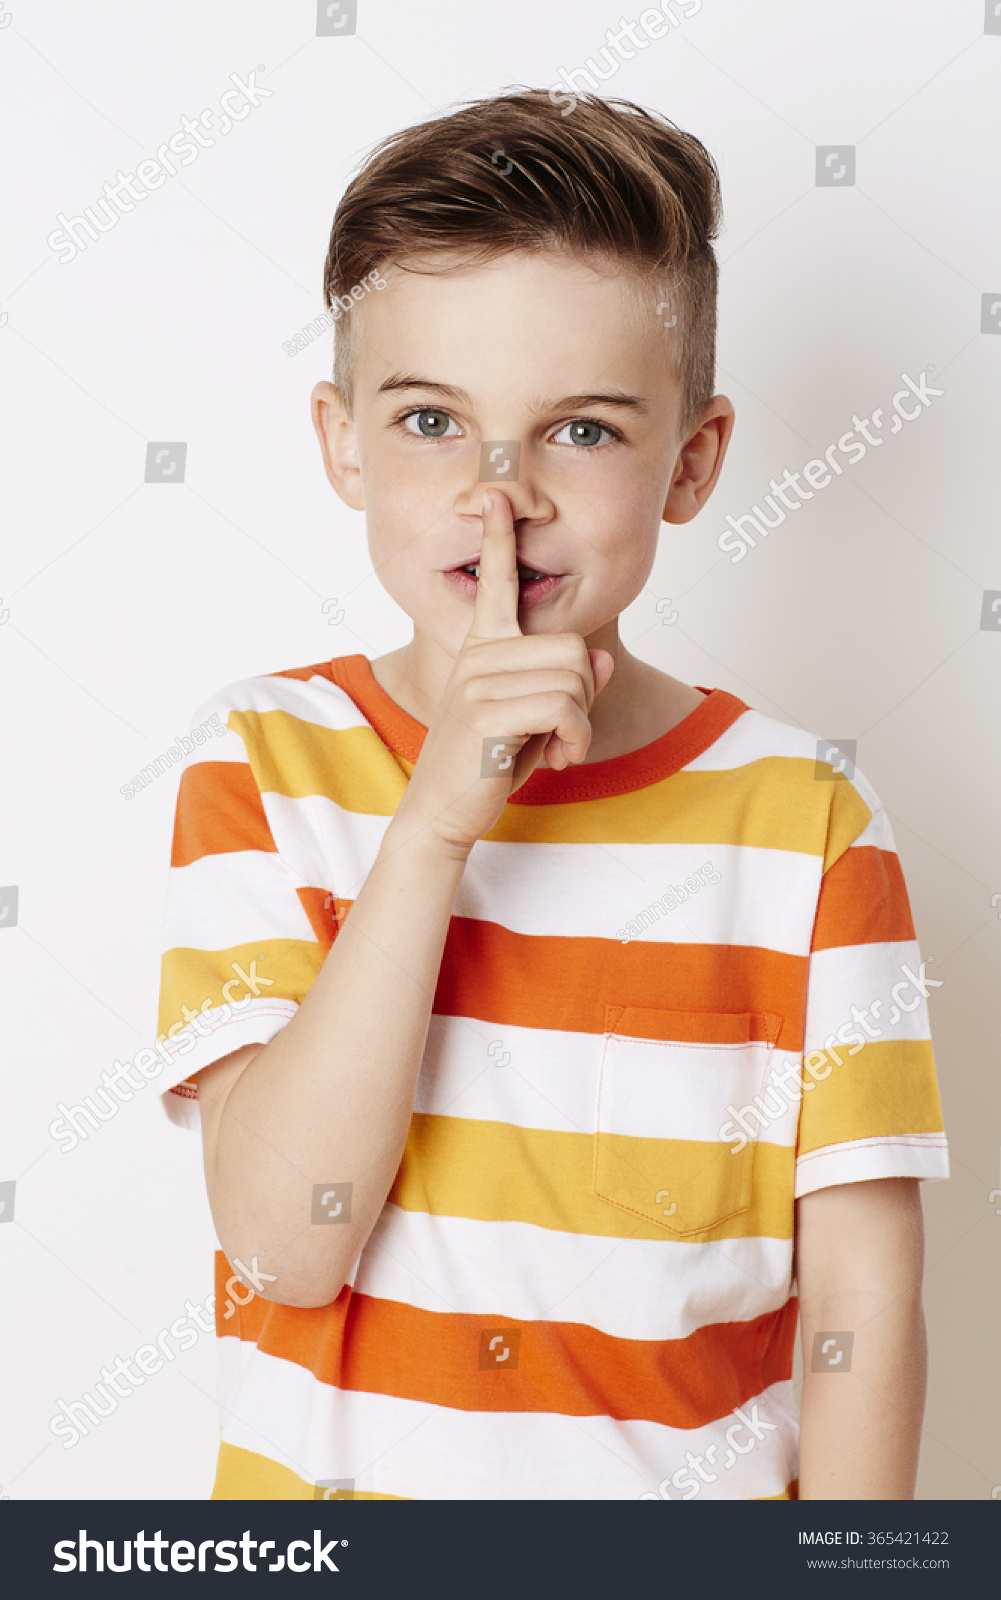 Cool young kid shushing at camera - Kid With Camera PNG